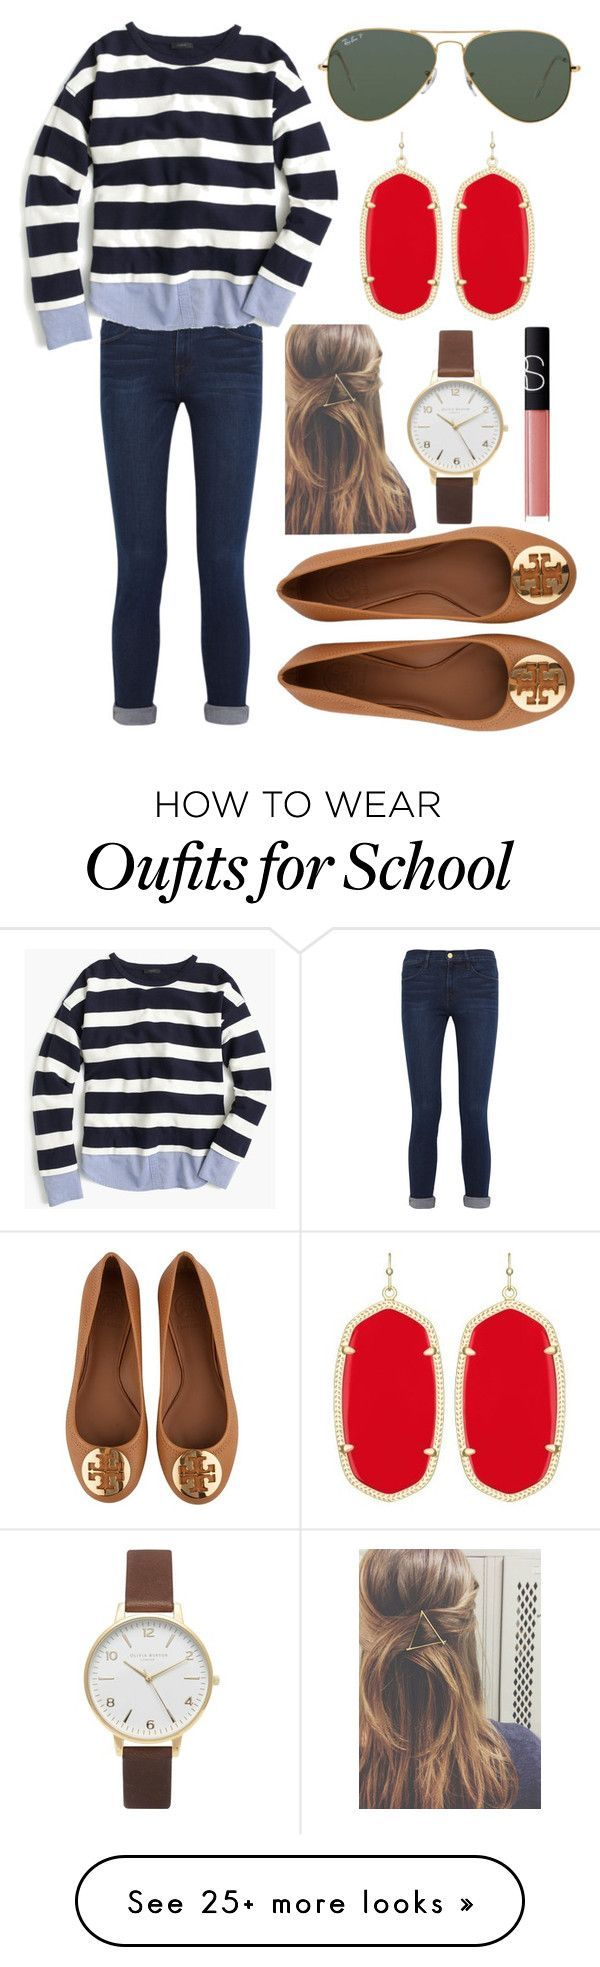 """Don't want to go to school"" by emmacaseyyyy on Polyvore featuring Frame Denim, J.Crew, Tory Burch, Ray-Ban, Kendra Scott, Olivia Burton and NARS Cosmetics"